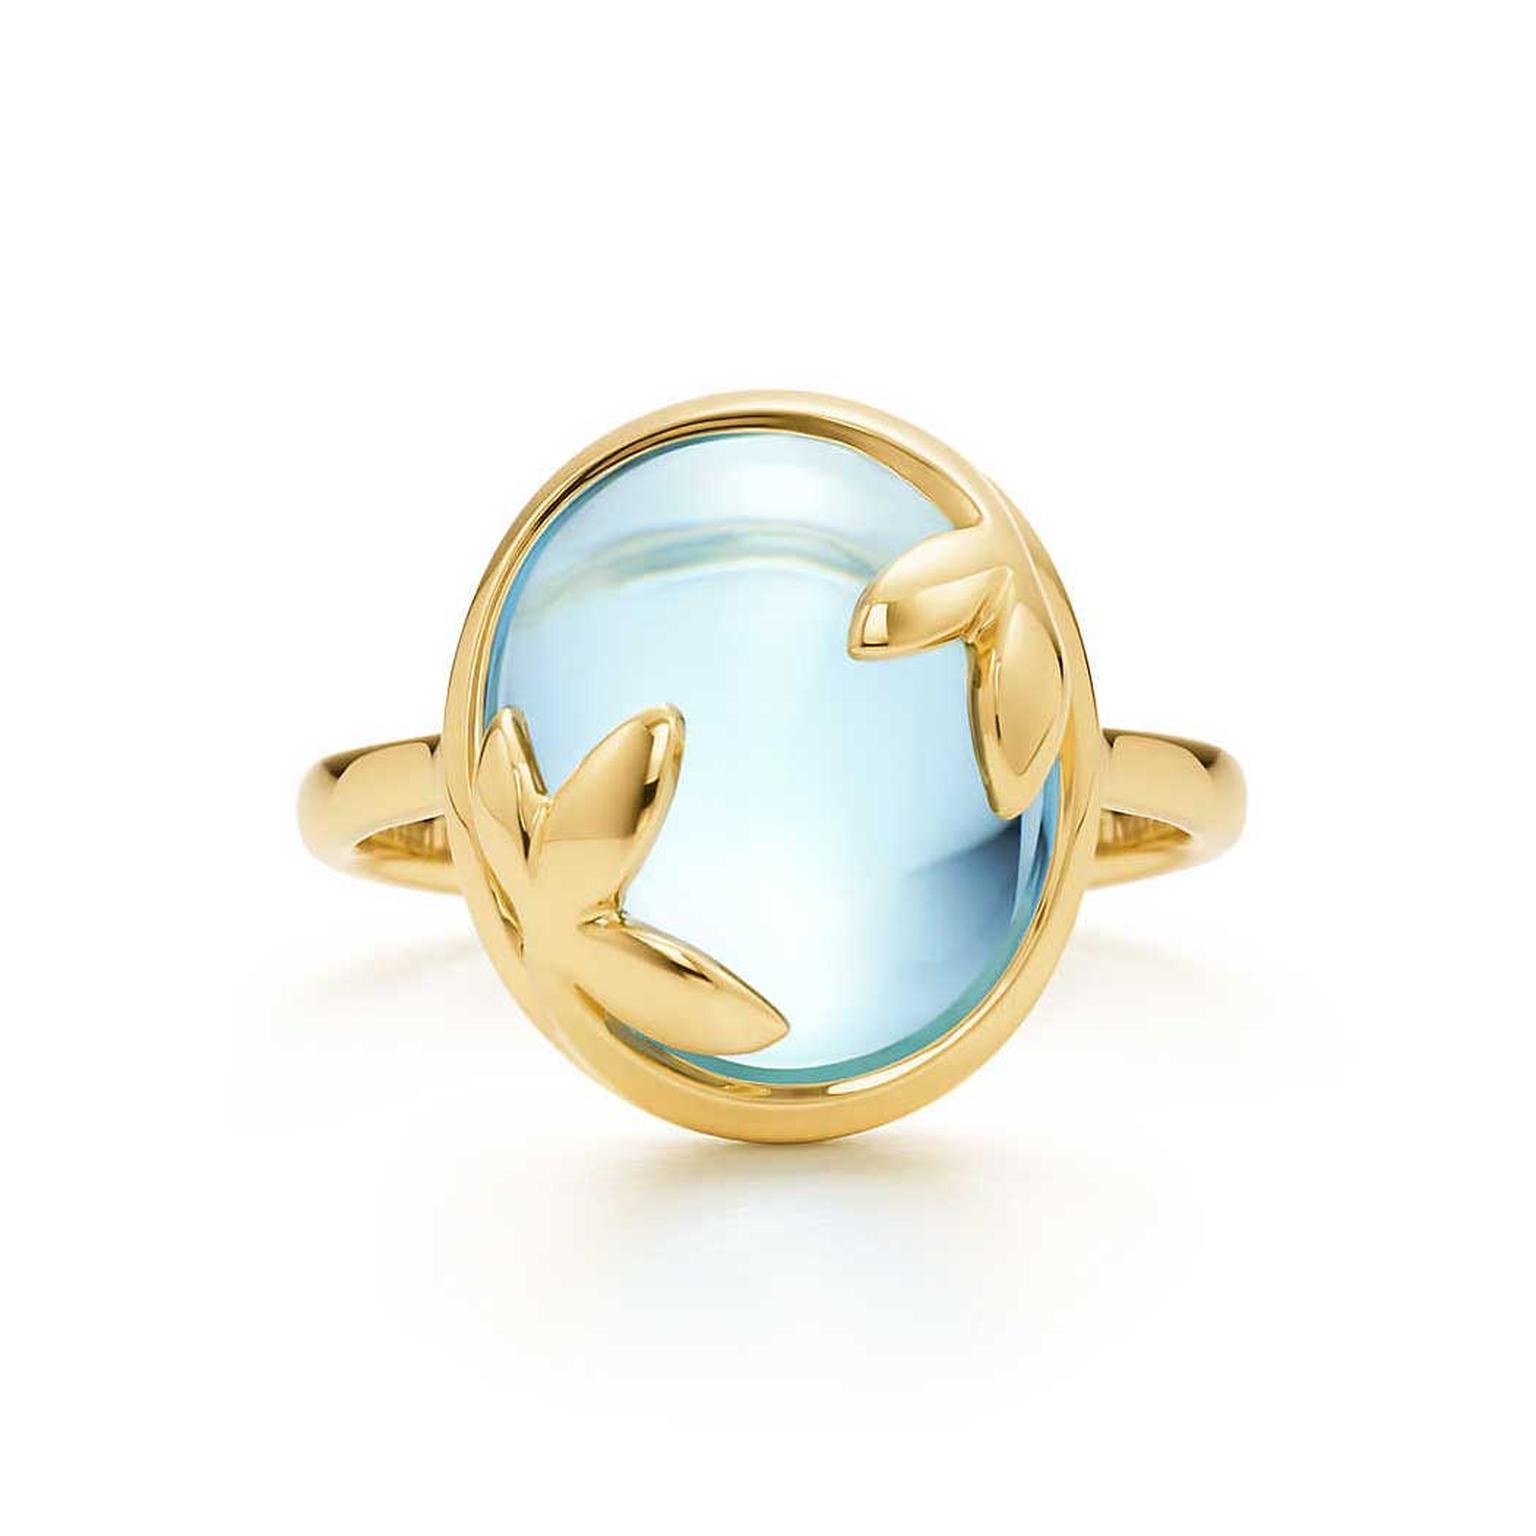 Paloma Picasso for Tiffany Olive Leaf Swiss blue topaz ring